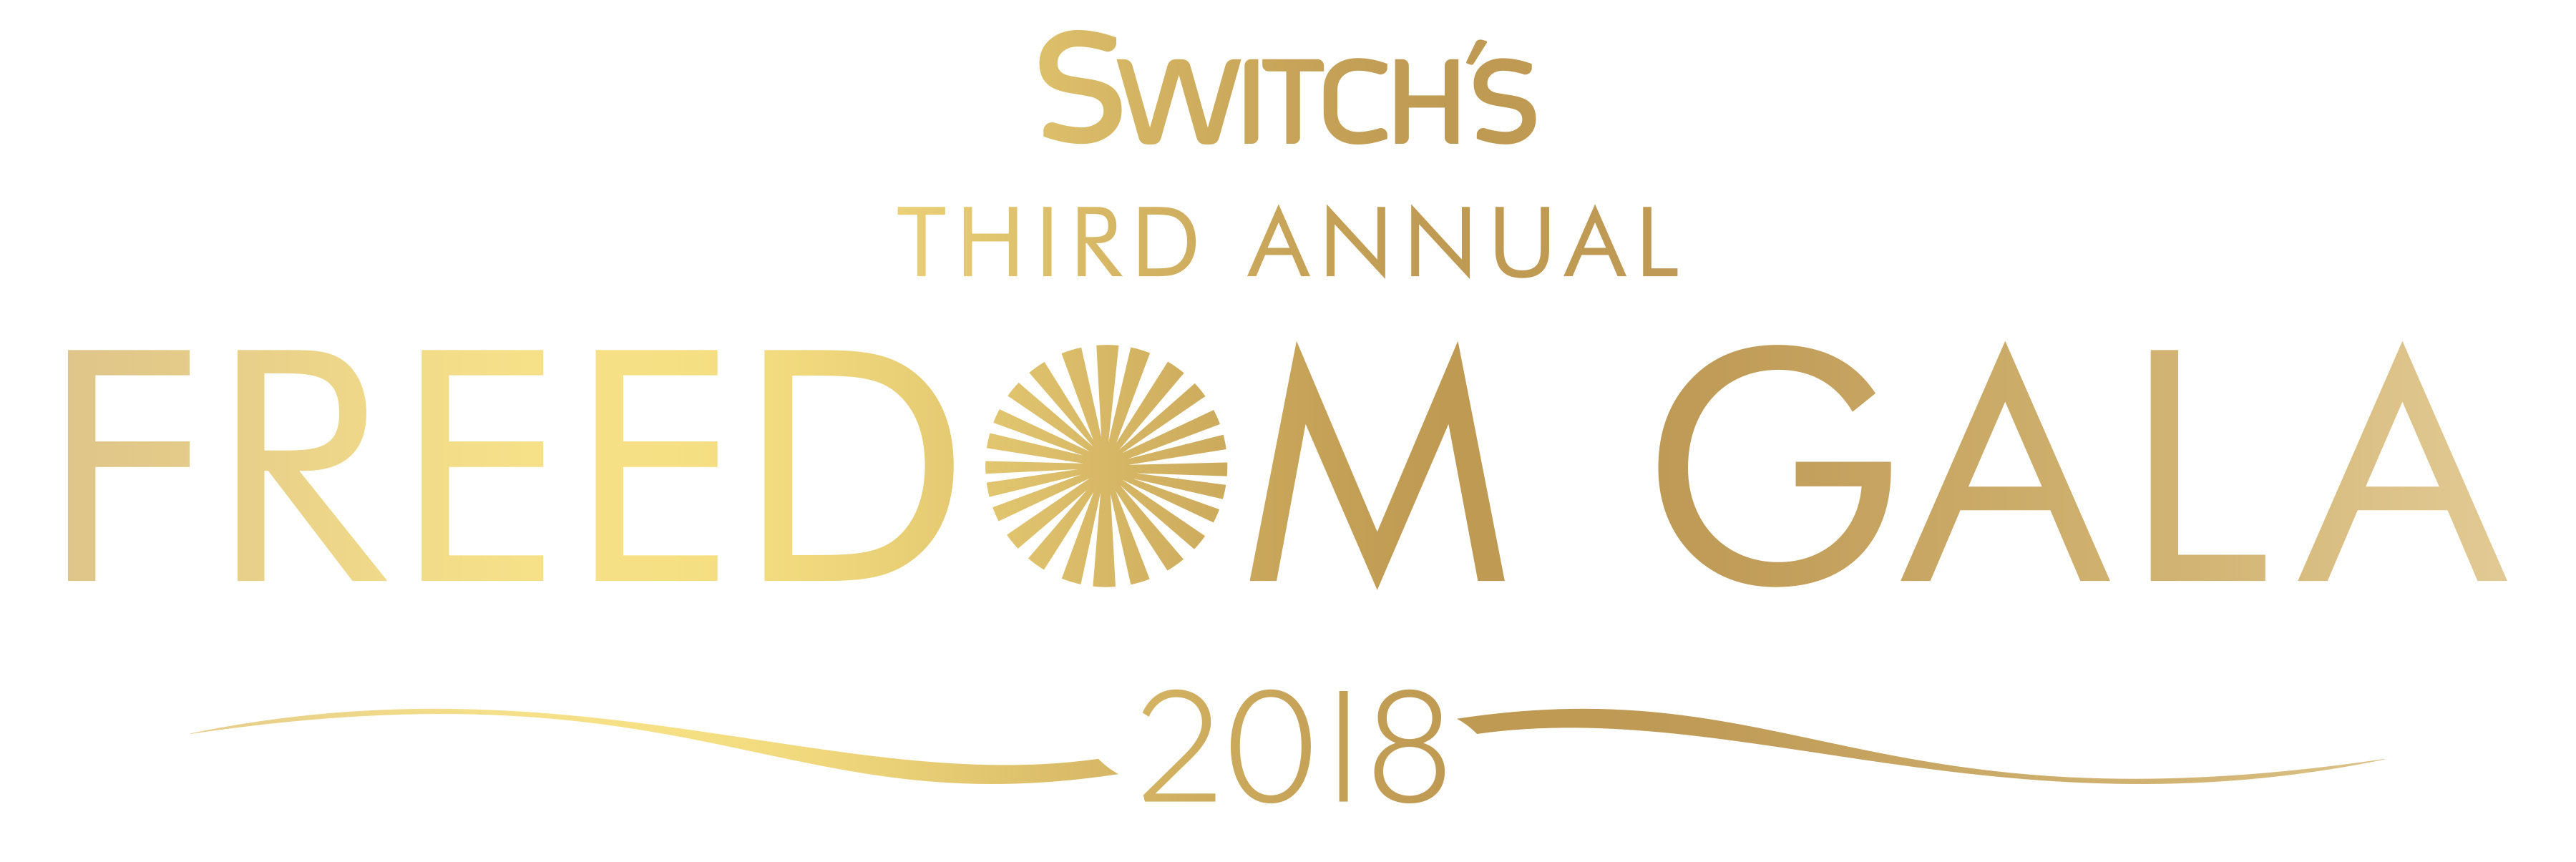 Switch 2018 gala logo main gold